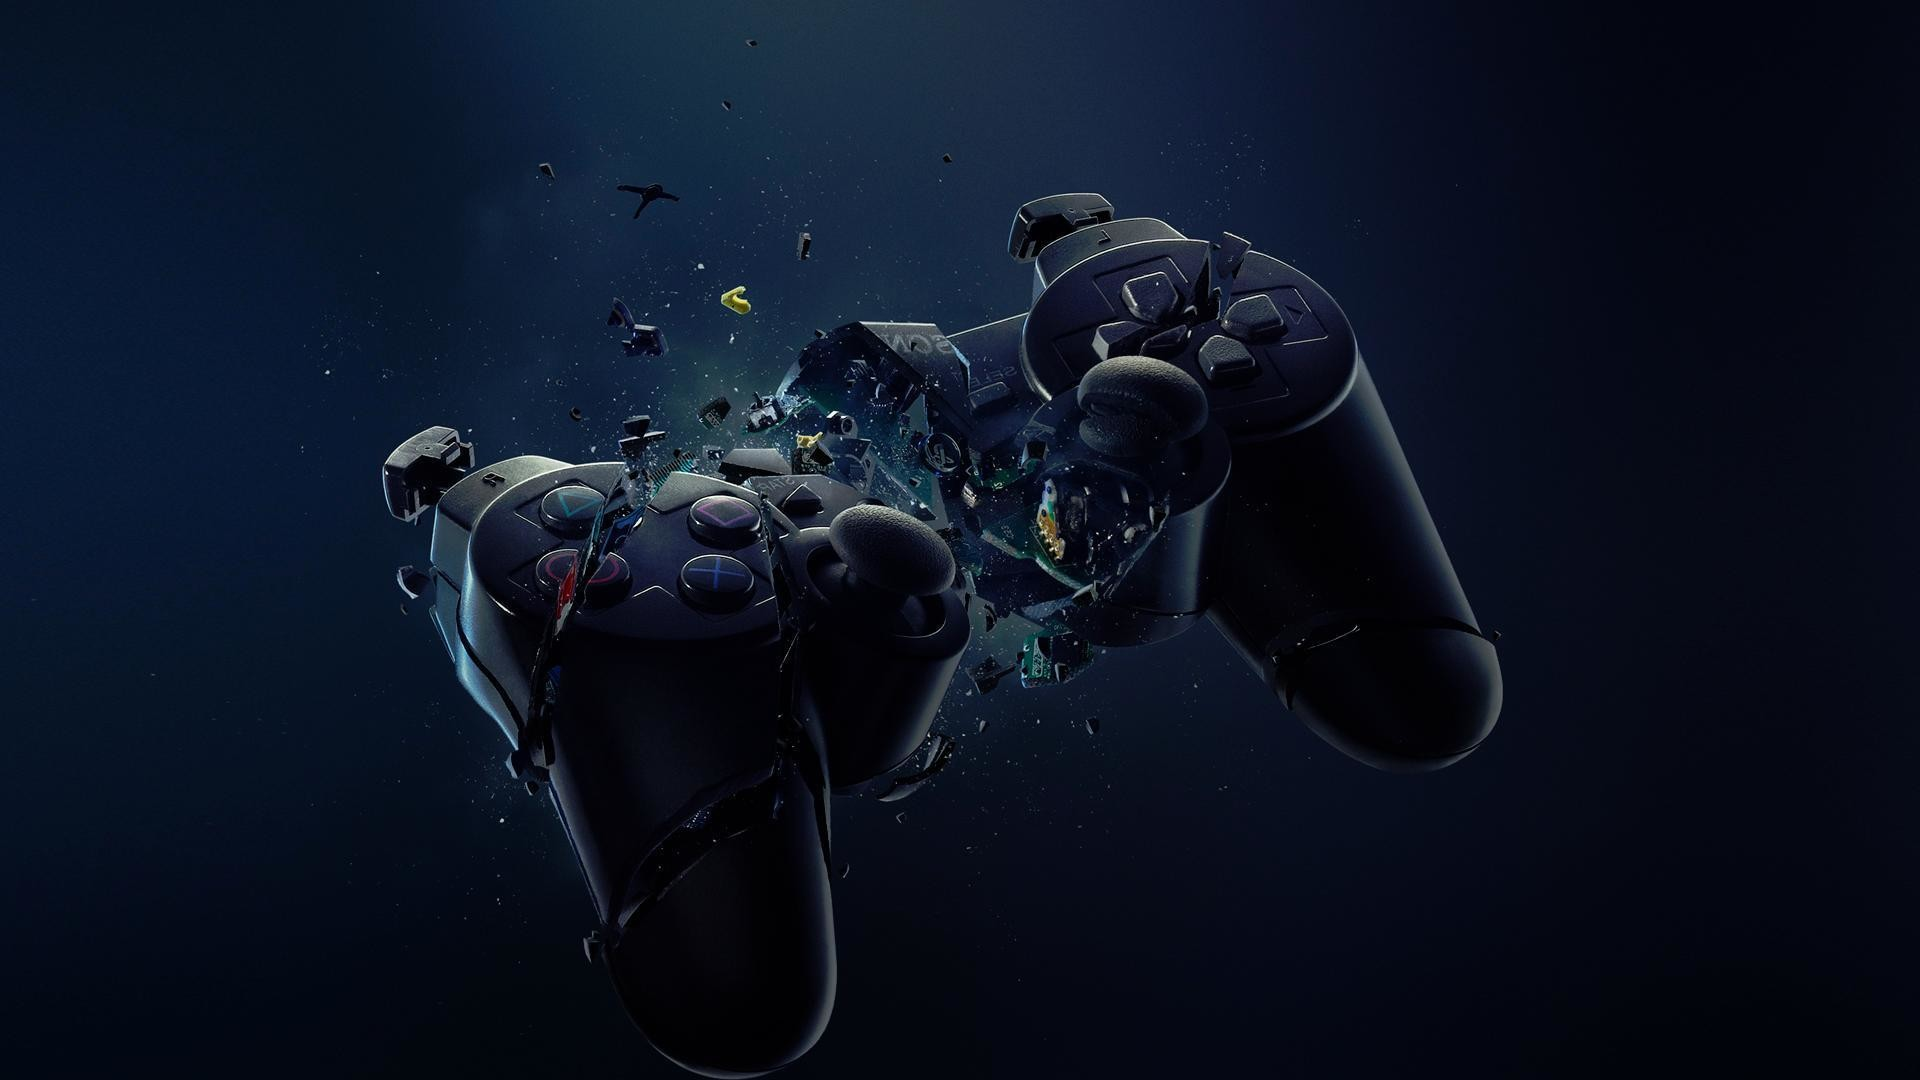 Ps3 Wallpapers 76 Images